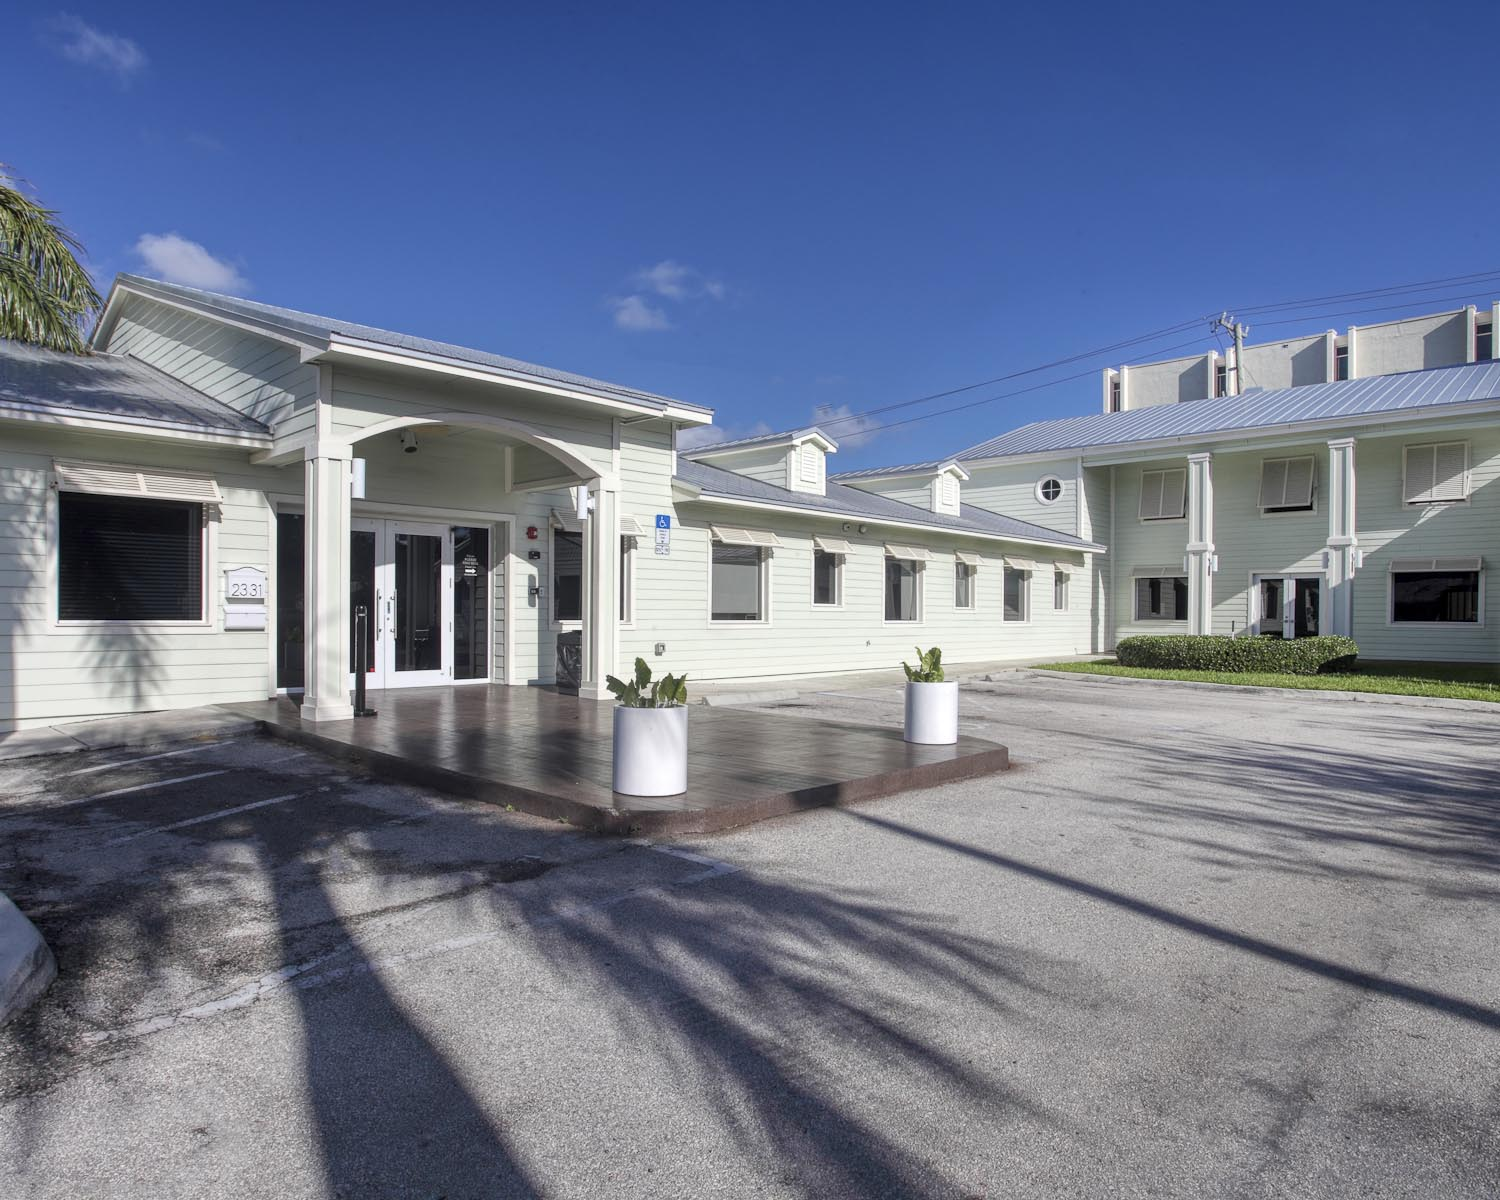 Fort Lauderdale detox center image 4.confidential medical detox in serene upscale accommodations